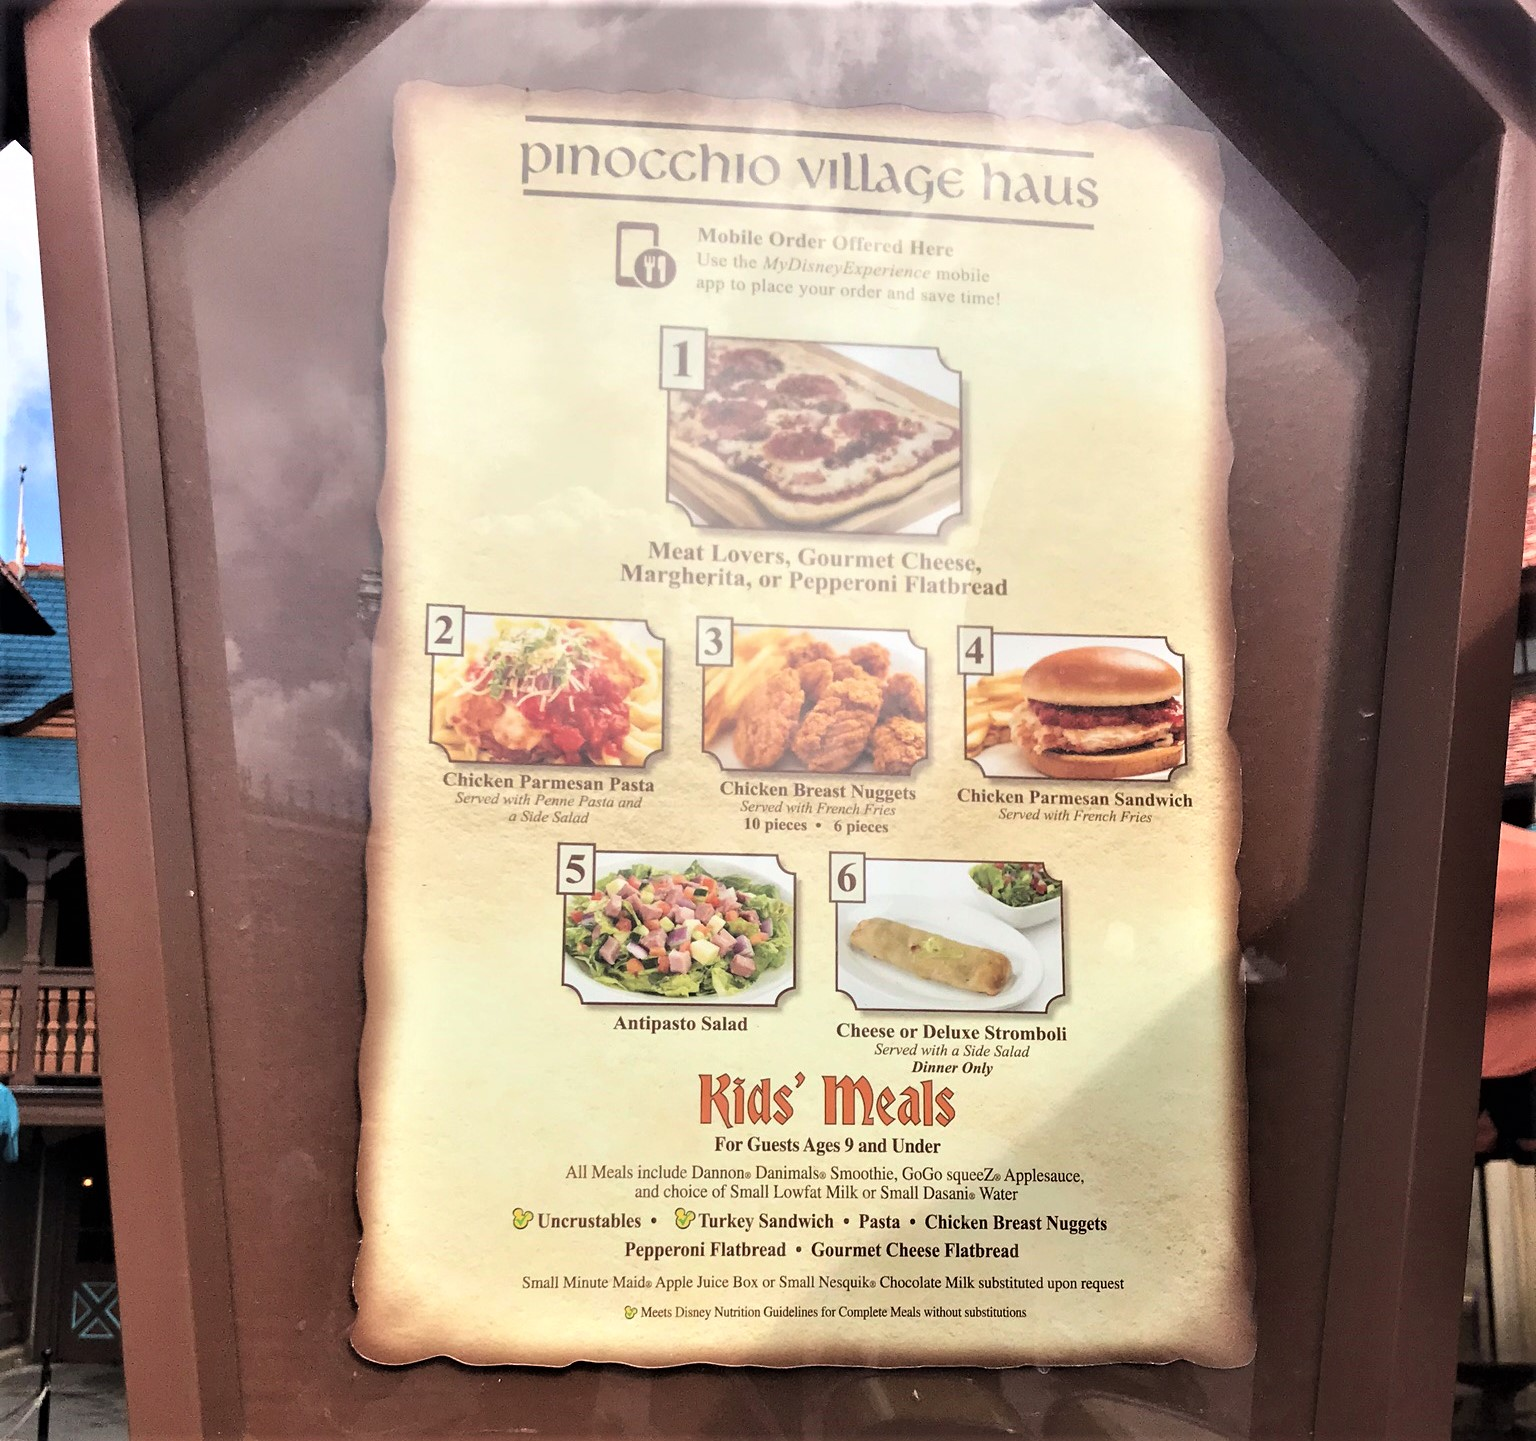 pinocchio village haus menu